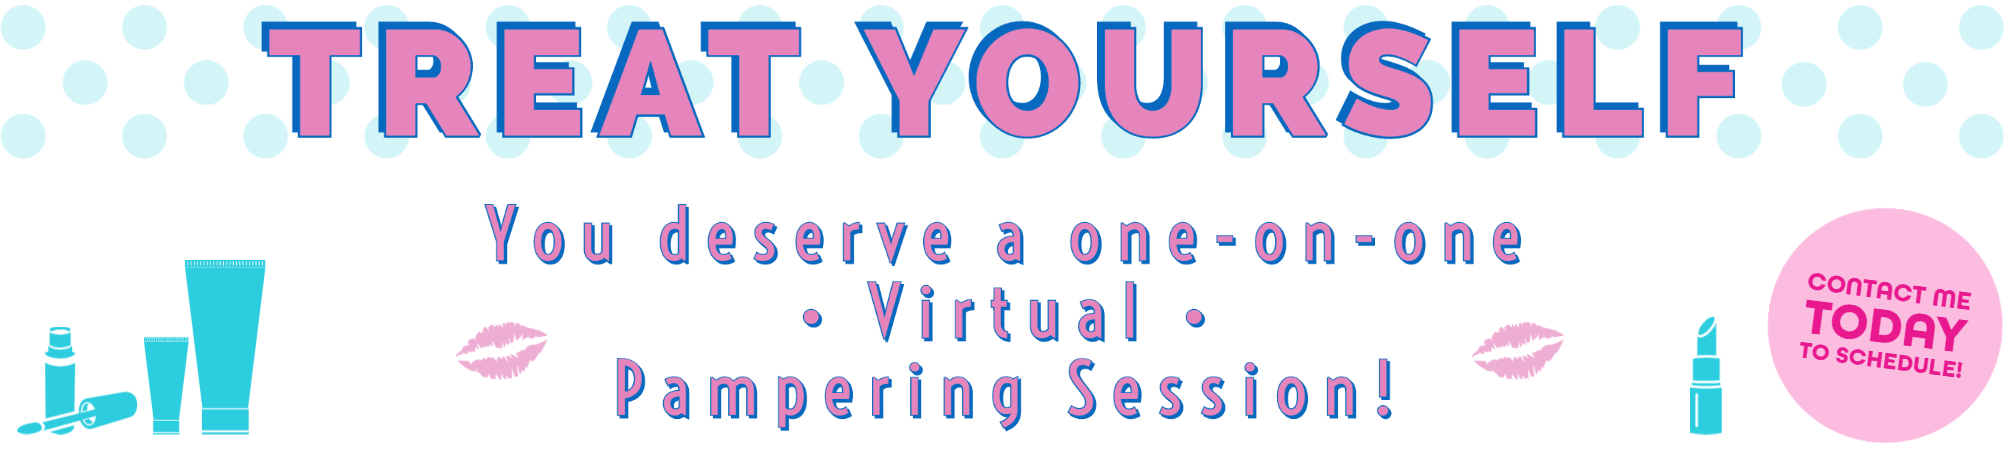 InvoiceBanner_VirtualPamperSession.png